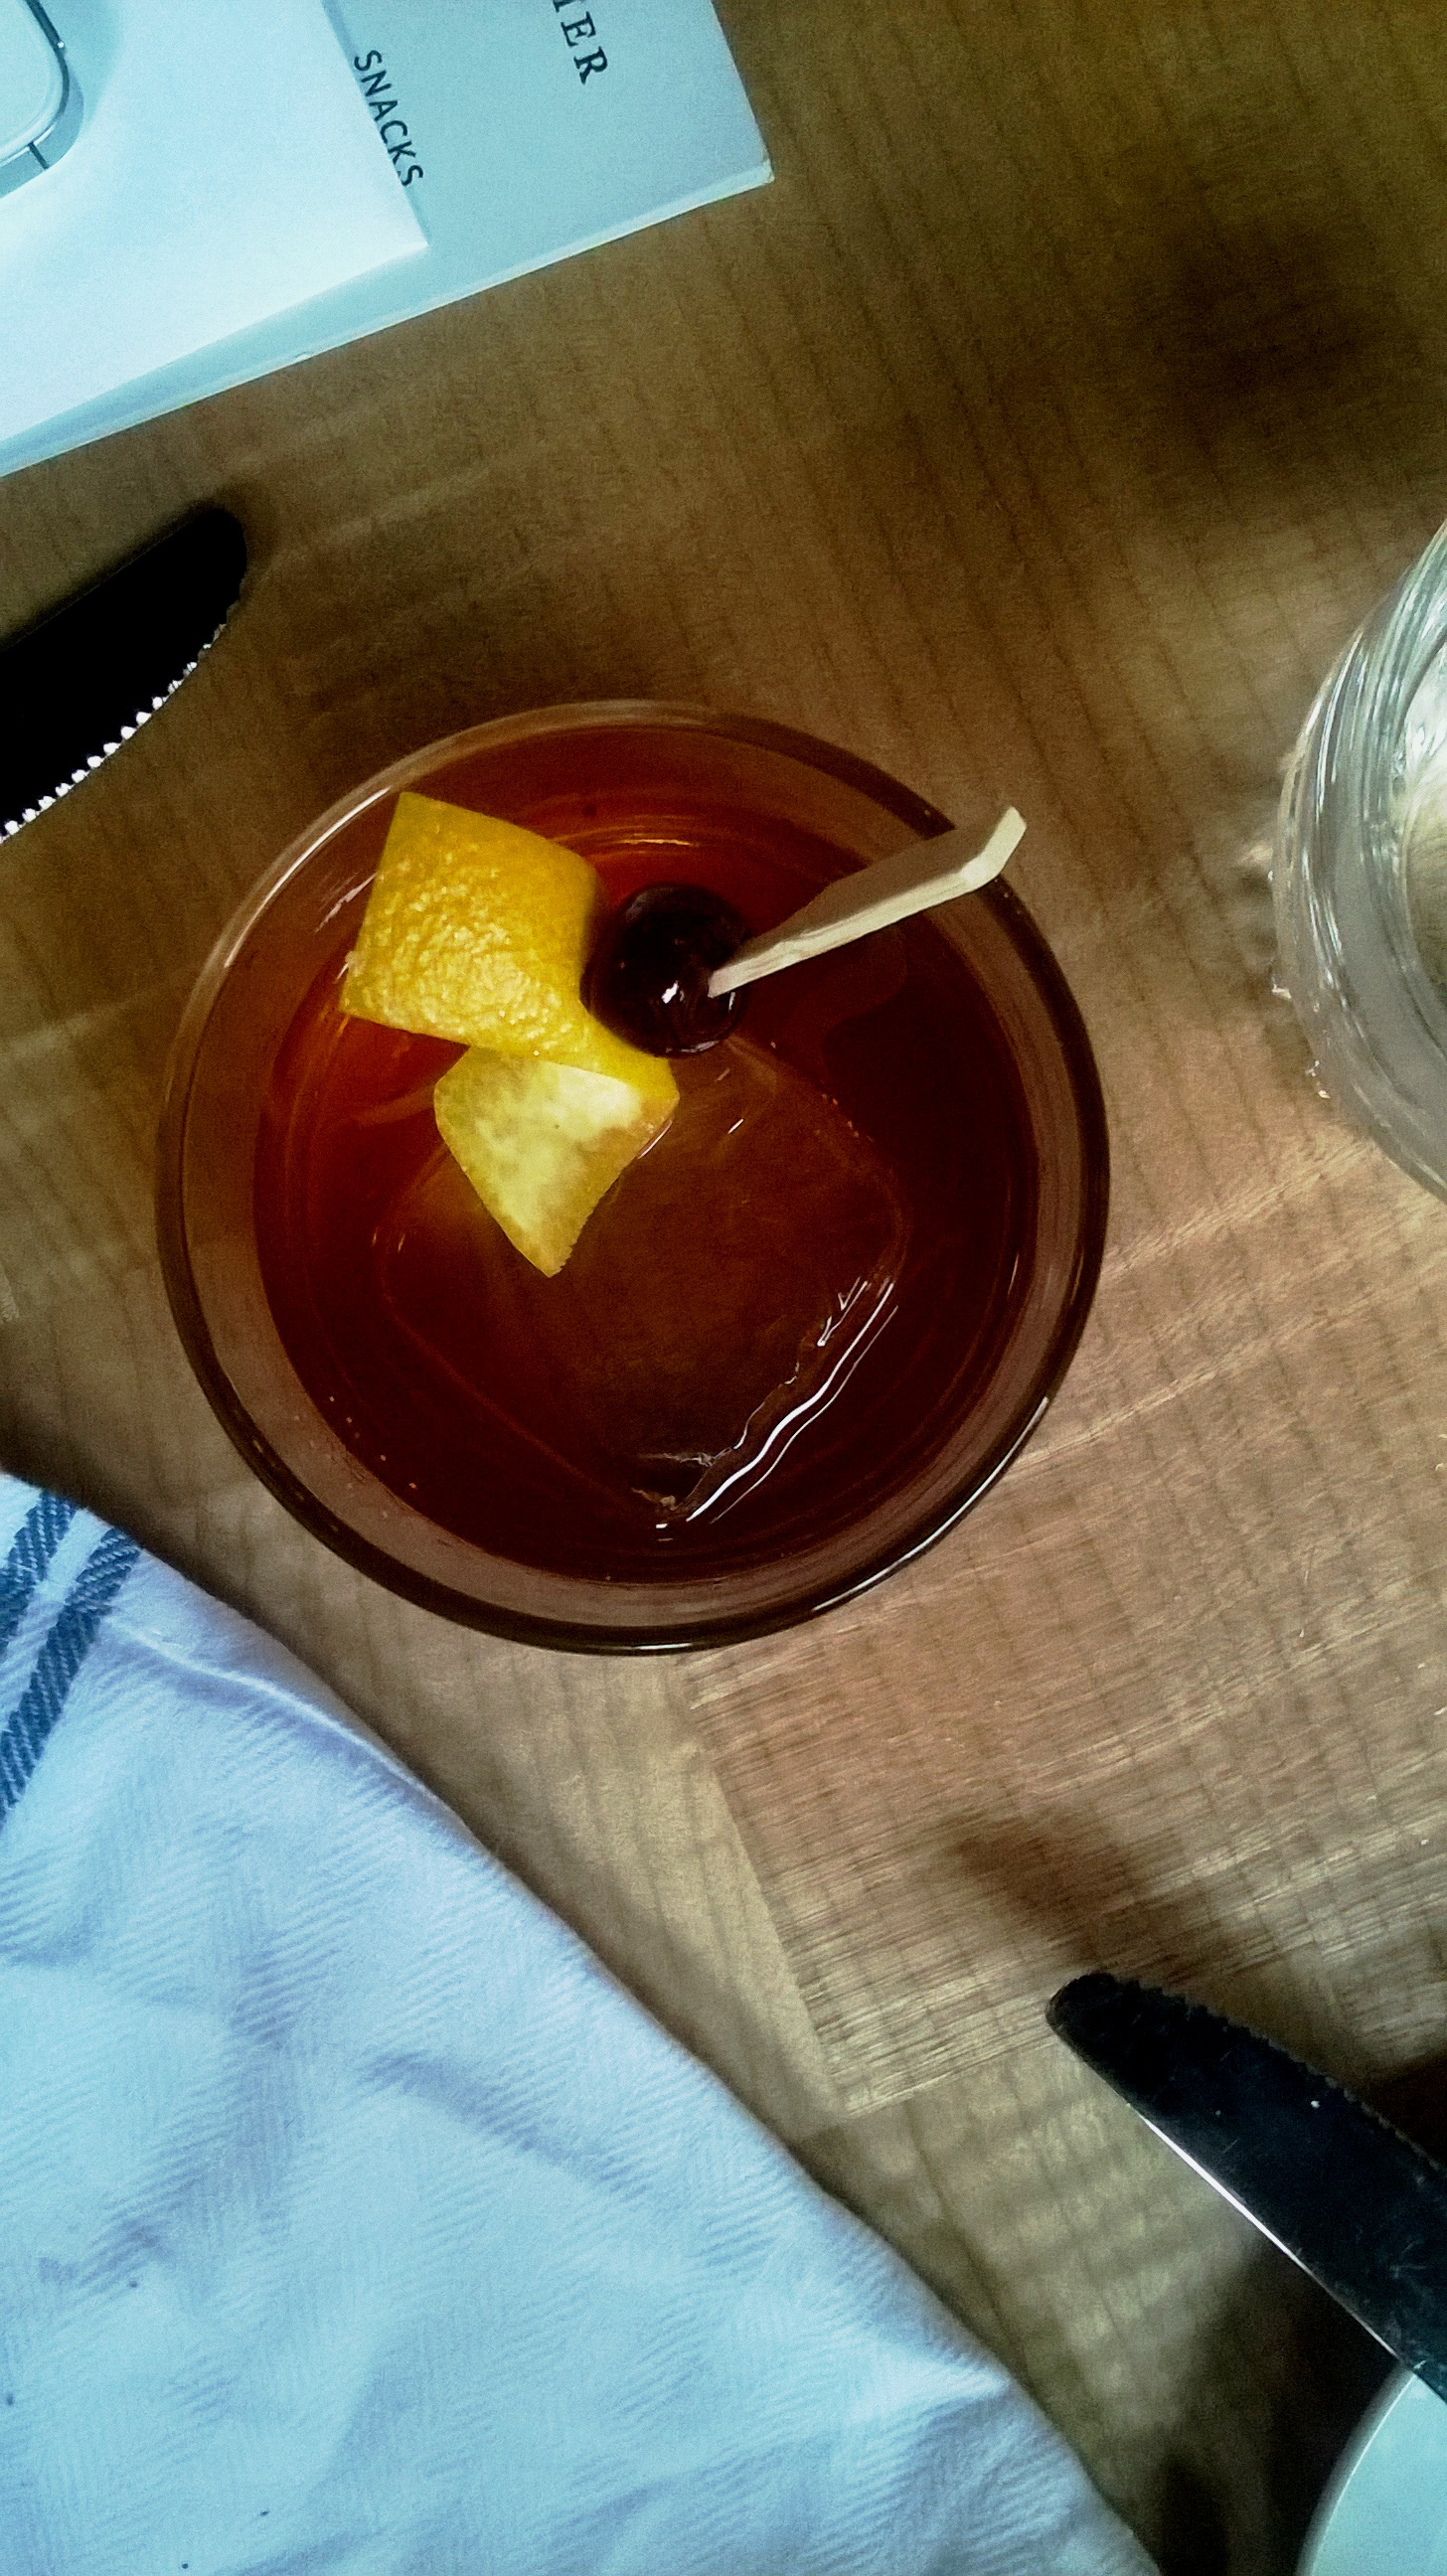 The cocktail of my 30's - The Old Fashioned - has only become better with my age. HA! Copyright 2014 Siiri Sampson. All Rights Reserved.